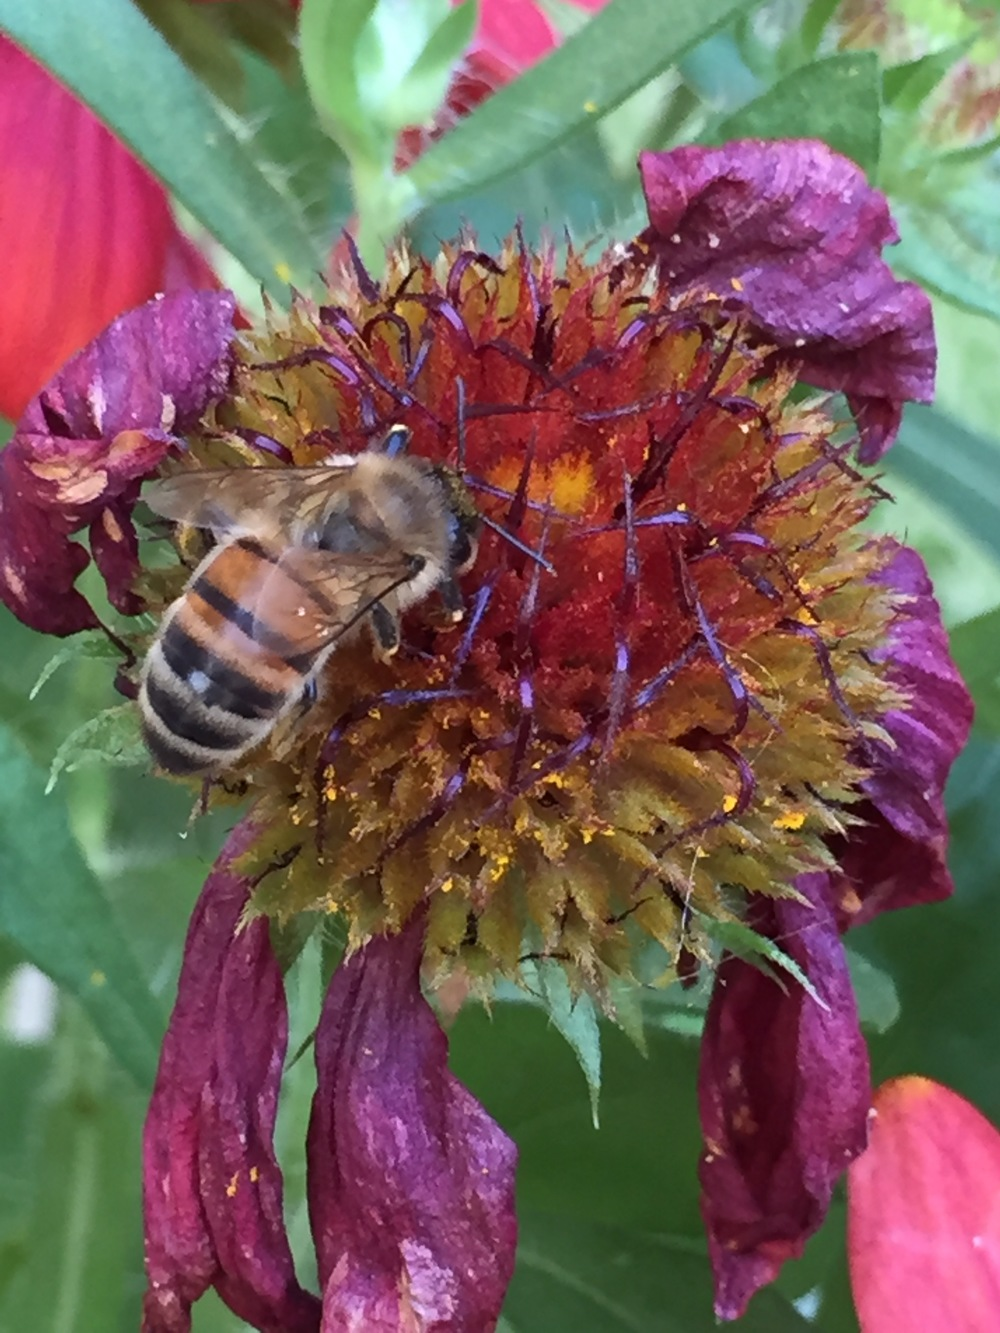 One of our honeybees stripping the last drops of nectar from a dying Galliardia.